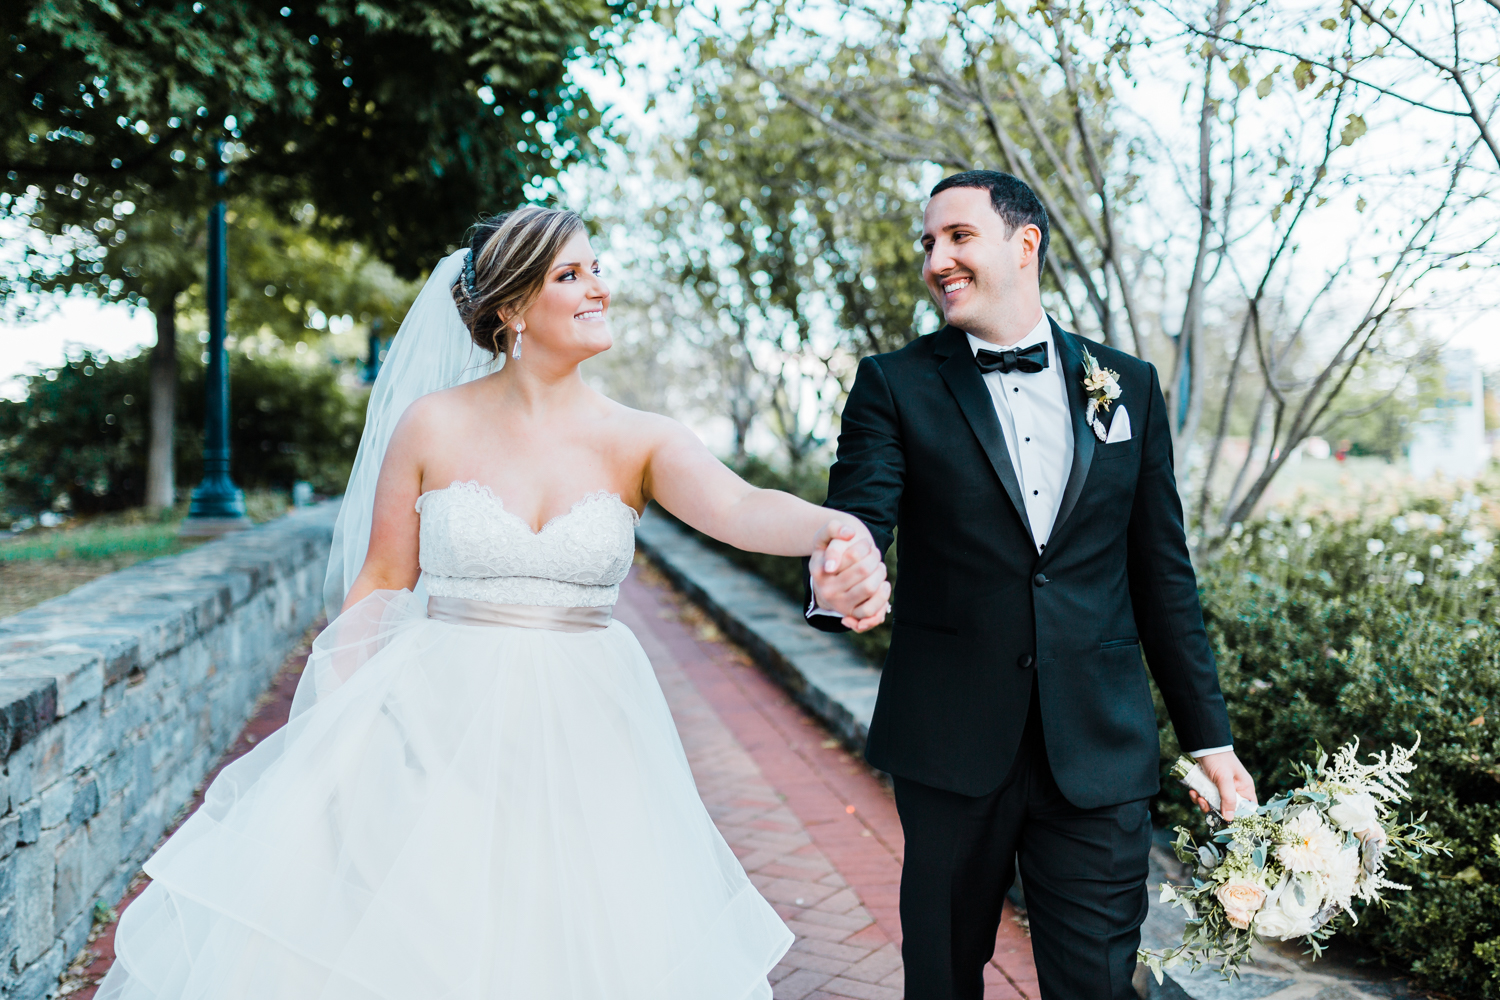 happy couple walking together and smiling - top rated wedding photographer and videographer in Maryland